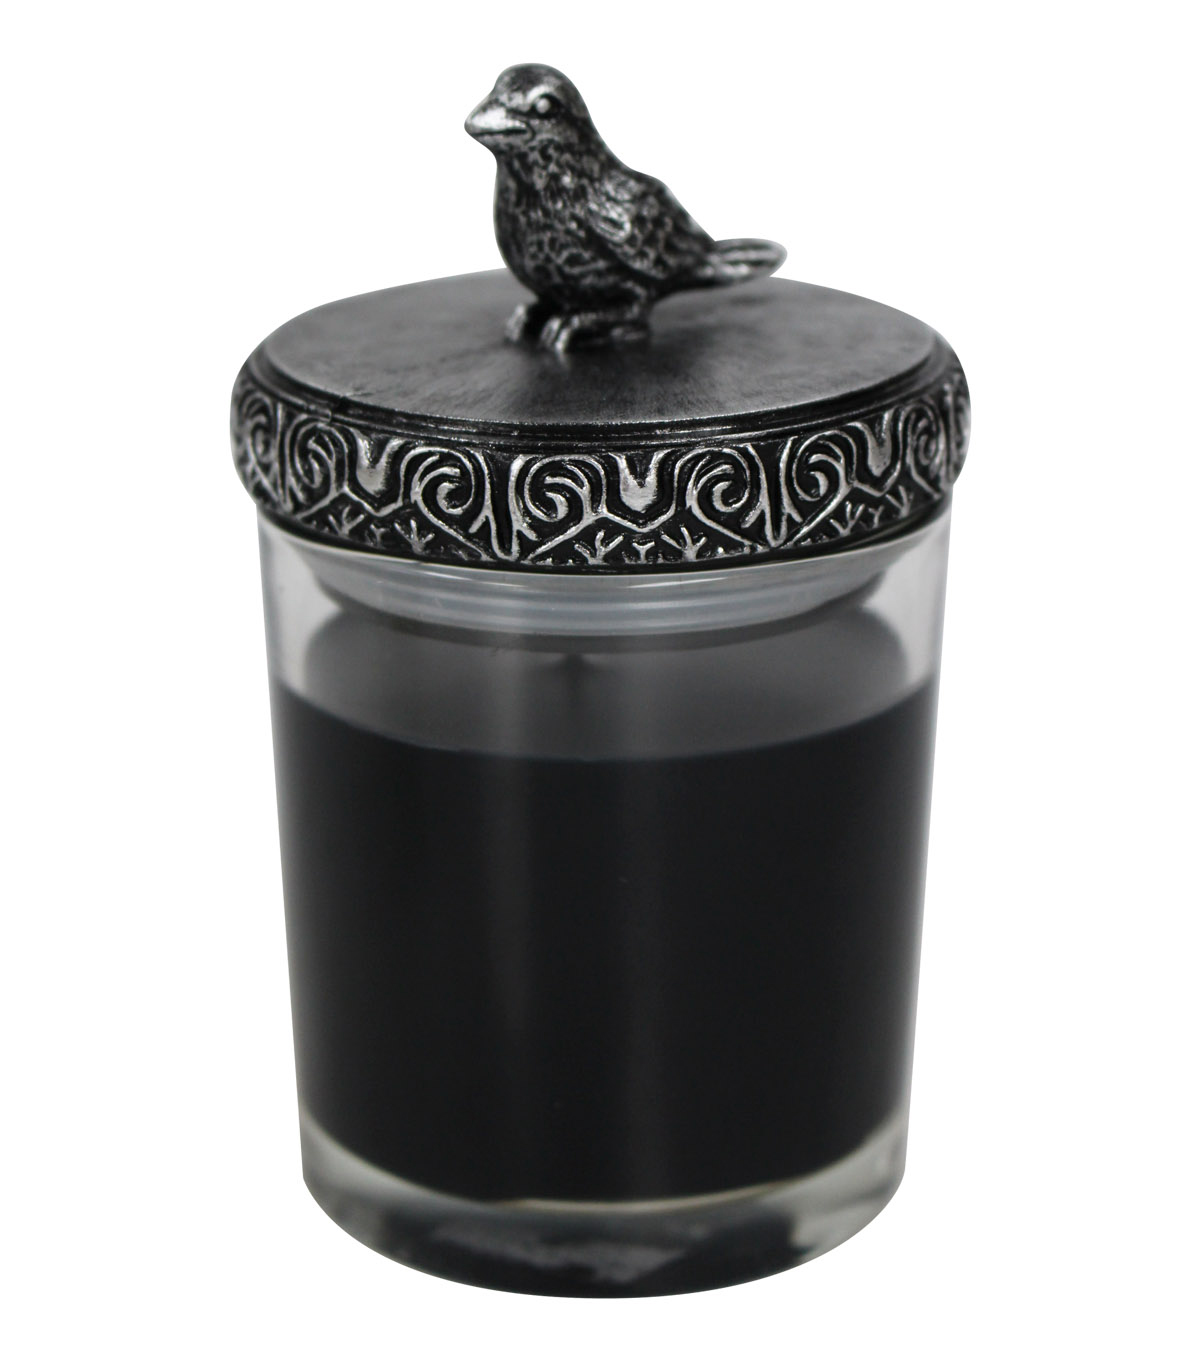 Maker's Halloween Crow Lid Jar Candle-Black